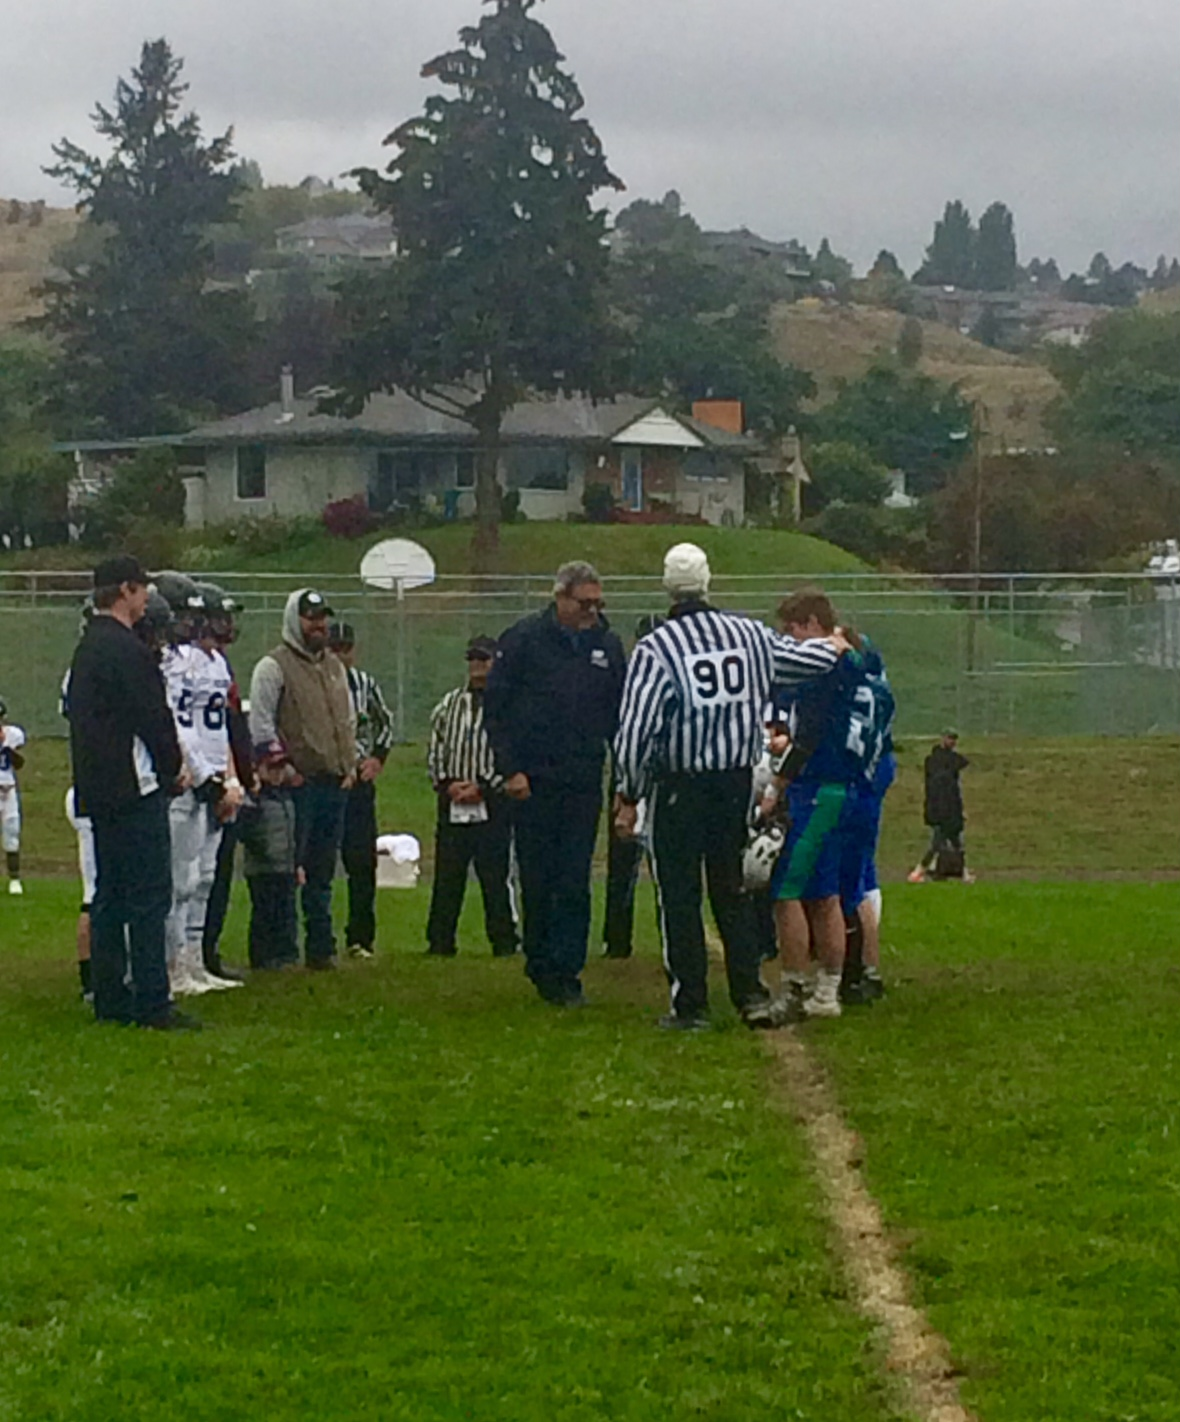 Coin toss at South Kamloops Titans game